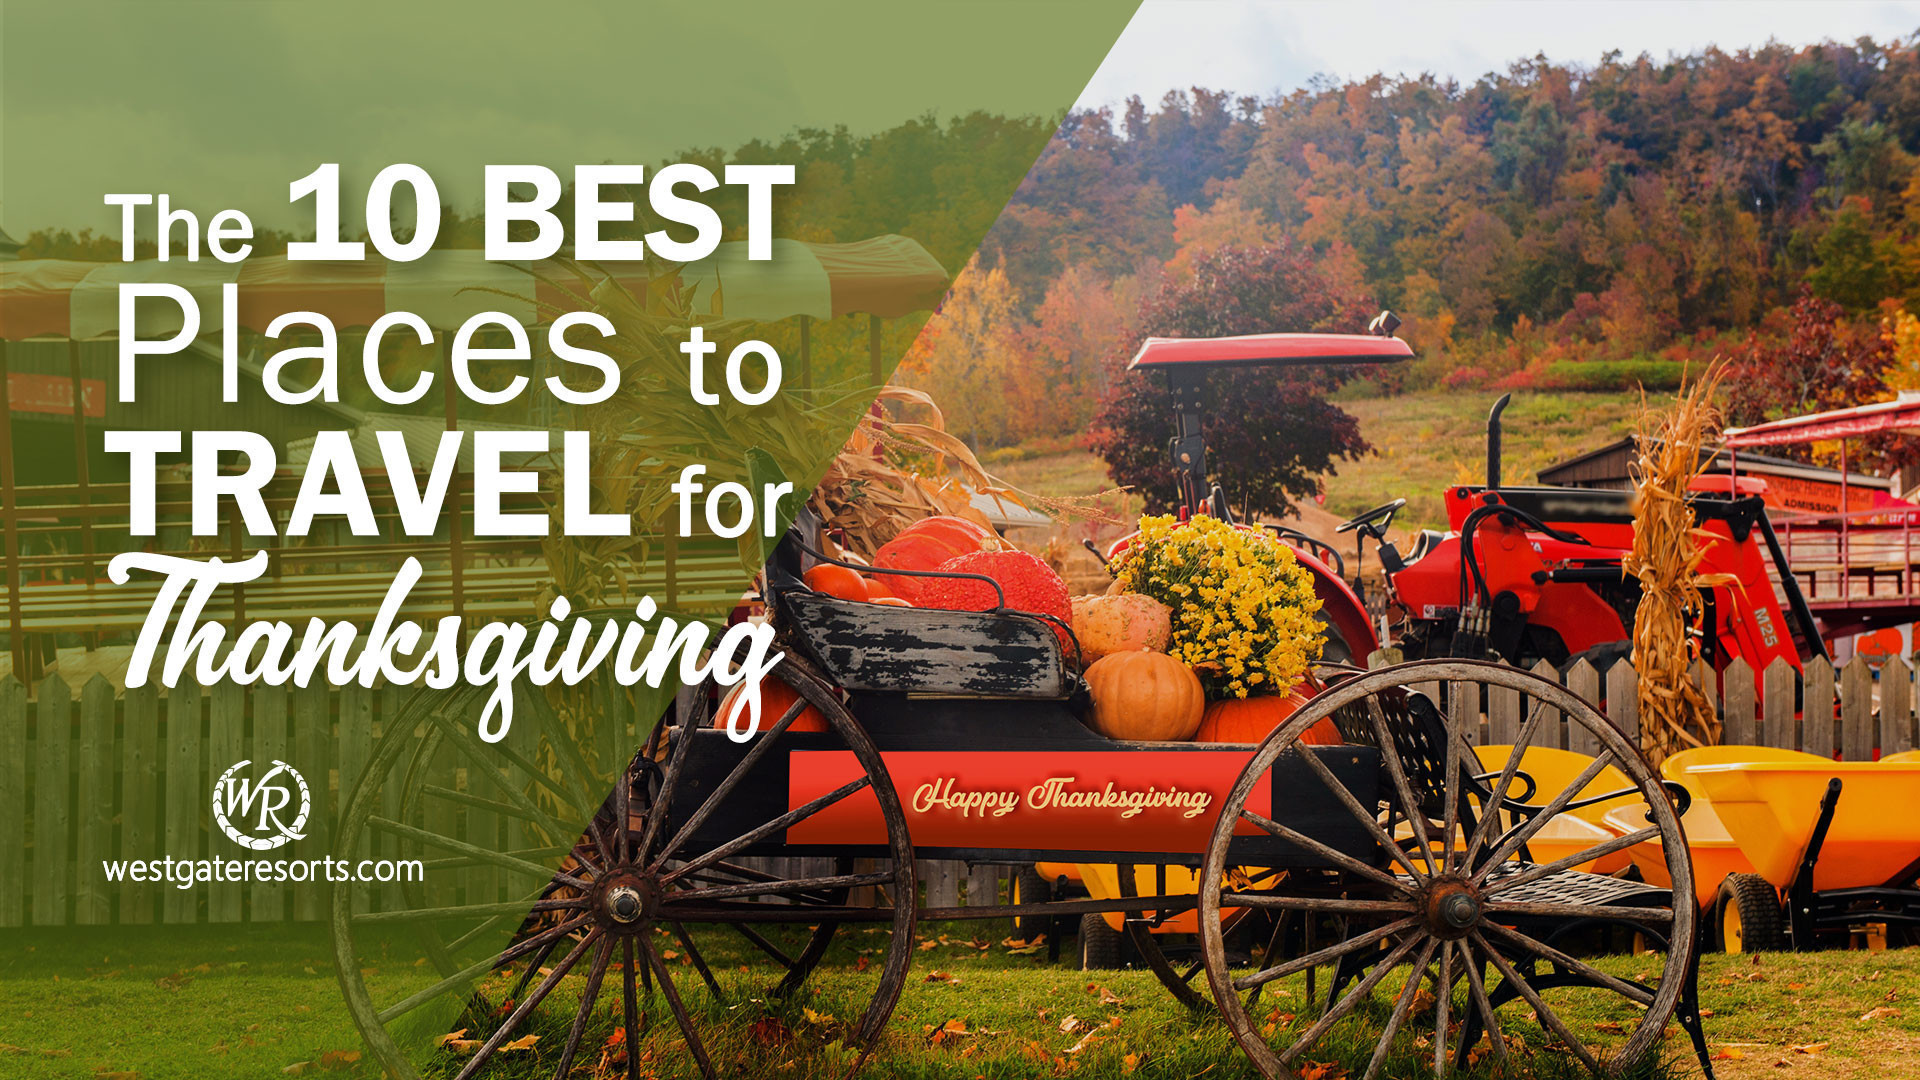 The 10 Best Places to Travel for Thanksgiving | Thanksgiving Travel Ideas | Westgate Resorts